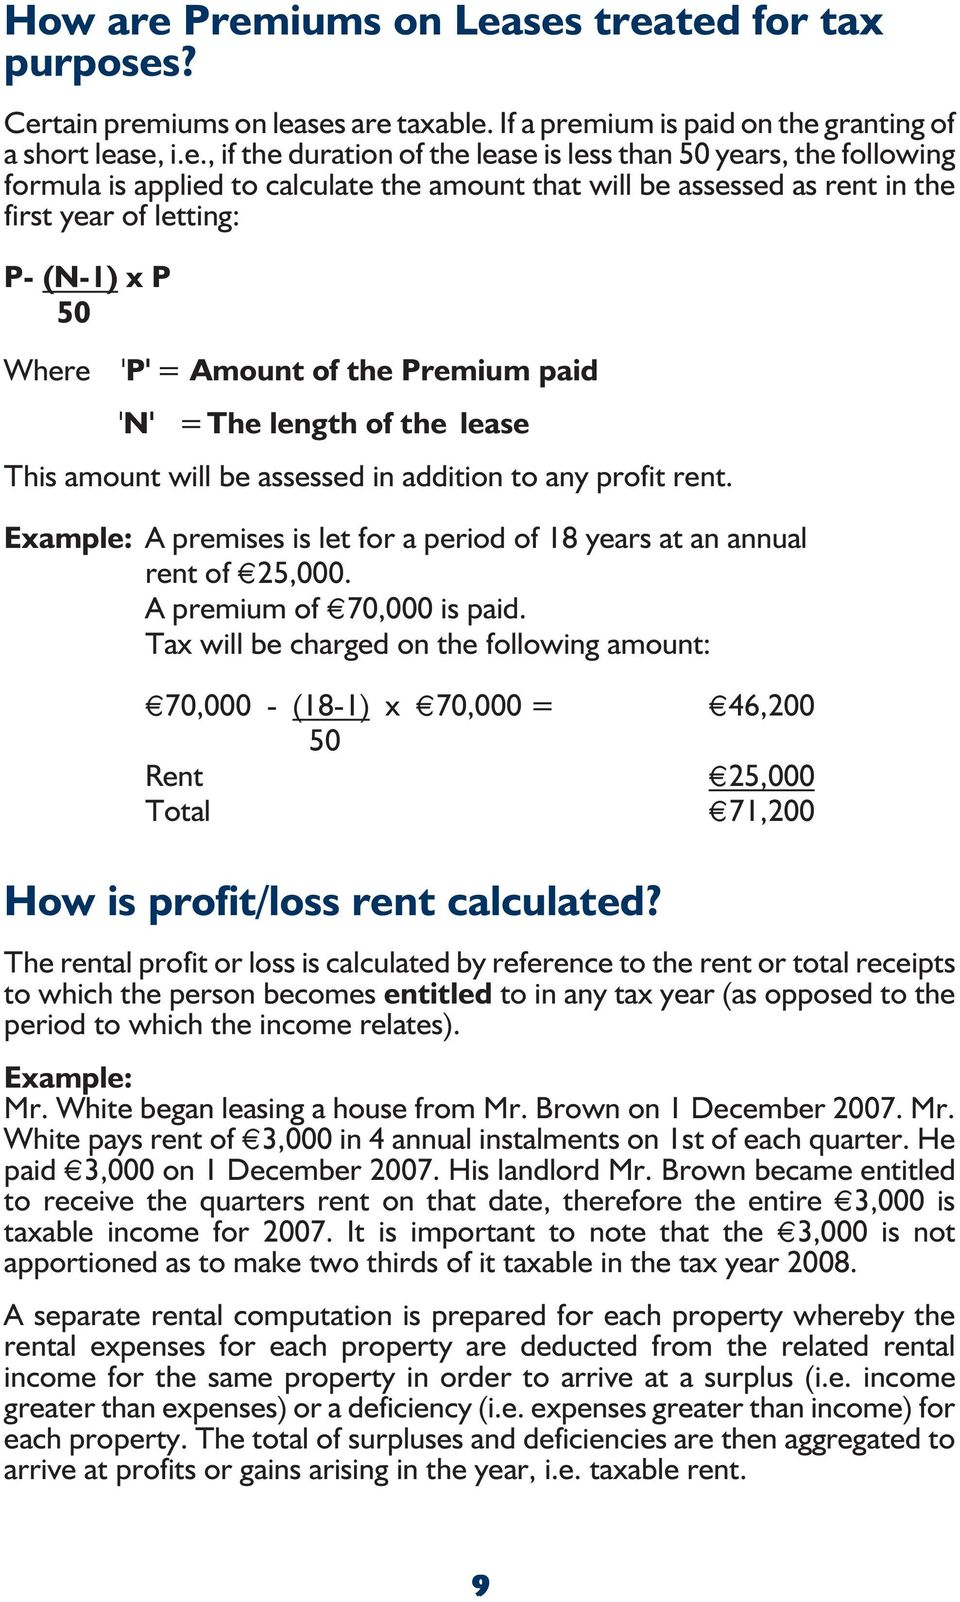 the following formula is applied to calculate the amount that will be assessed as rent in the first year of letting: P- (N-1) xp 50 Where 'P' = Amount of the Premium paid 'N' =The length of the lease